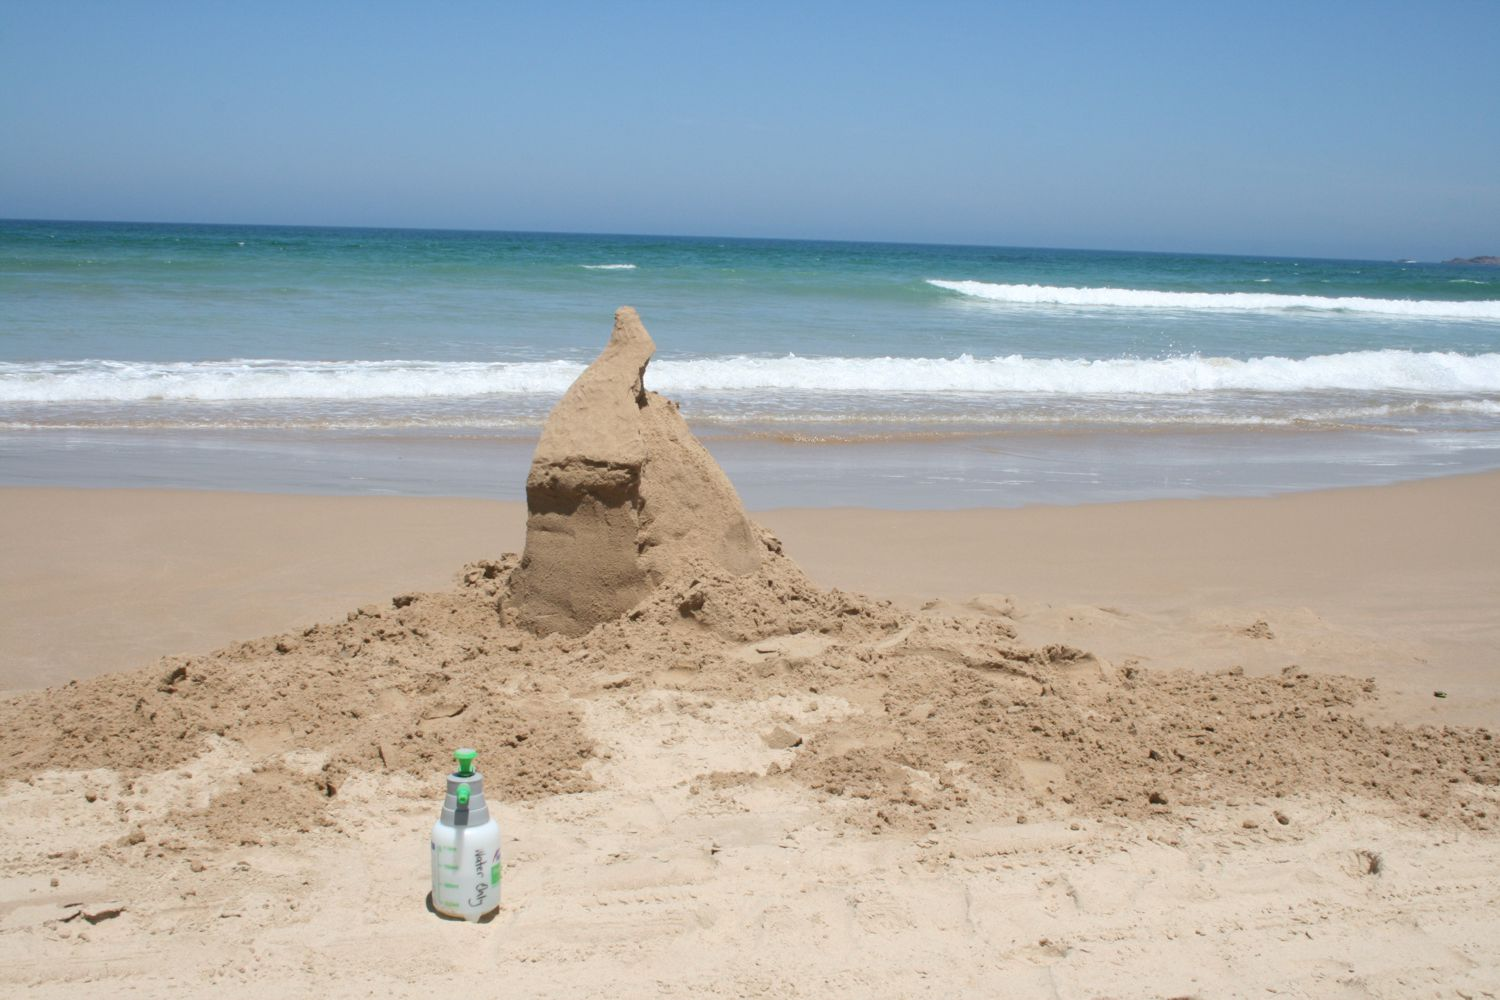 Scientists reveal how to make the perfect sandcastle: Key